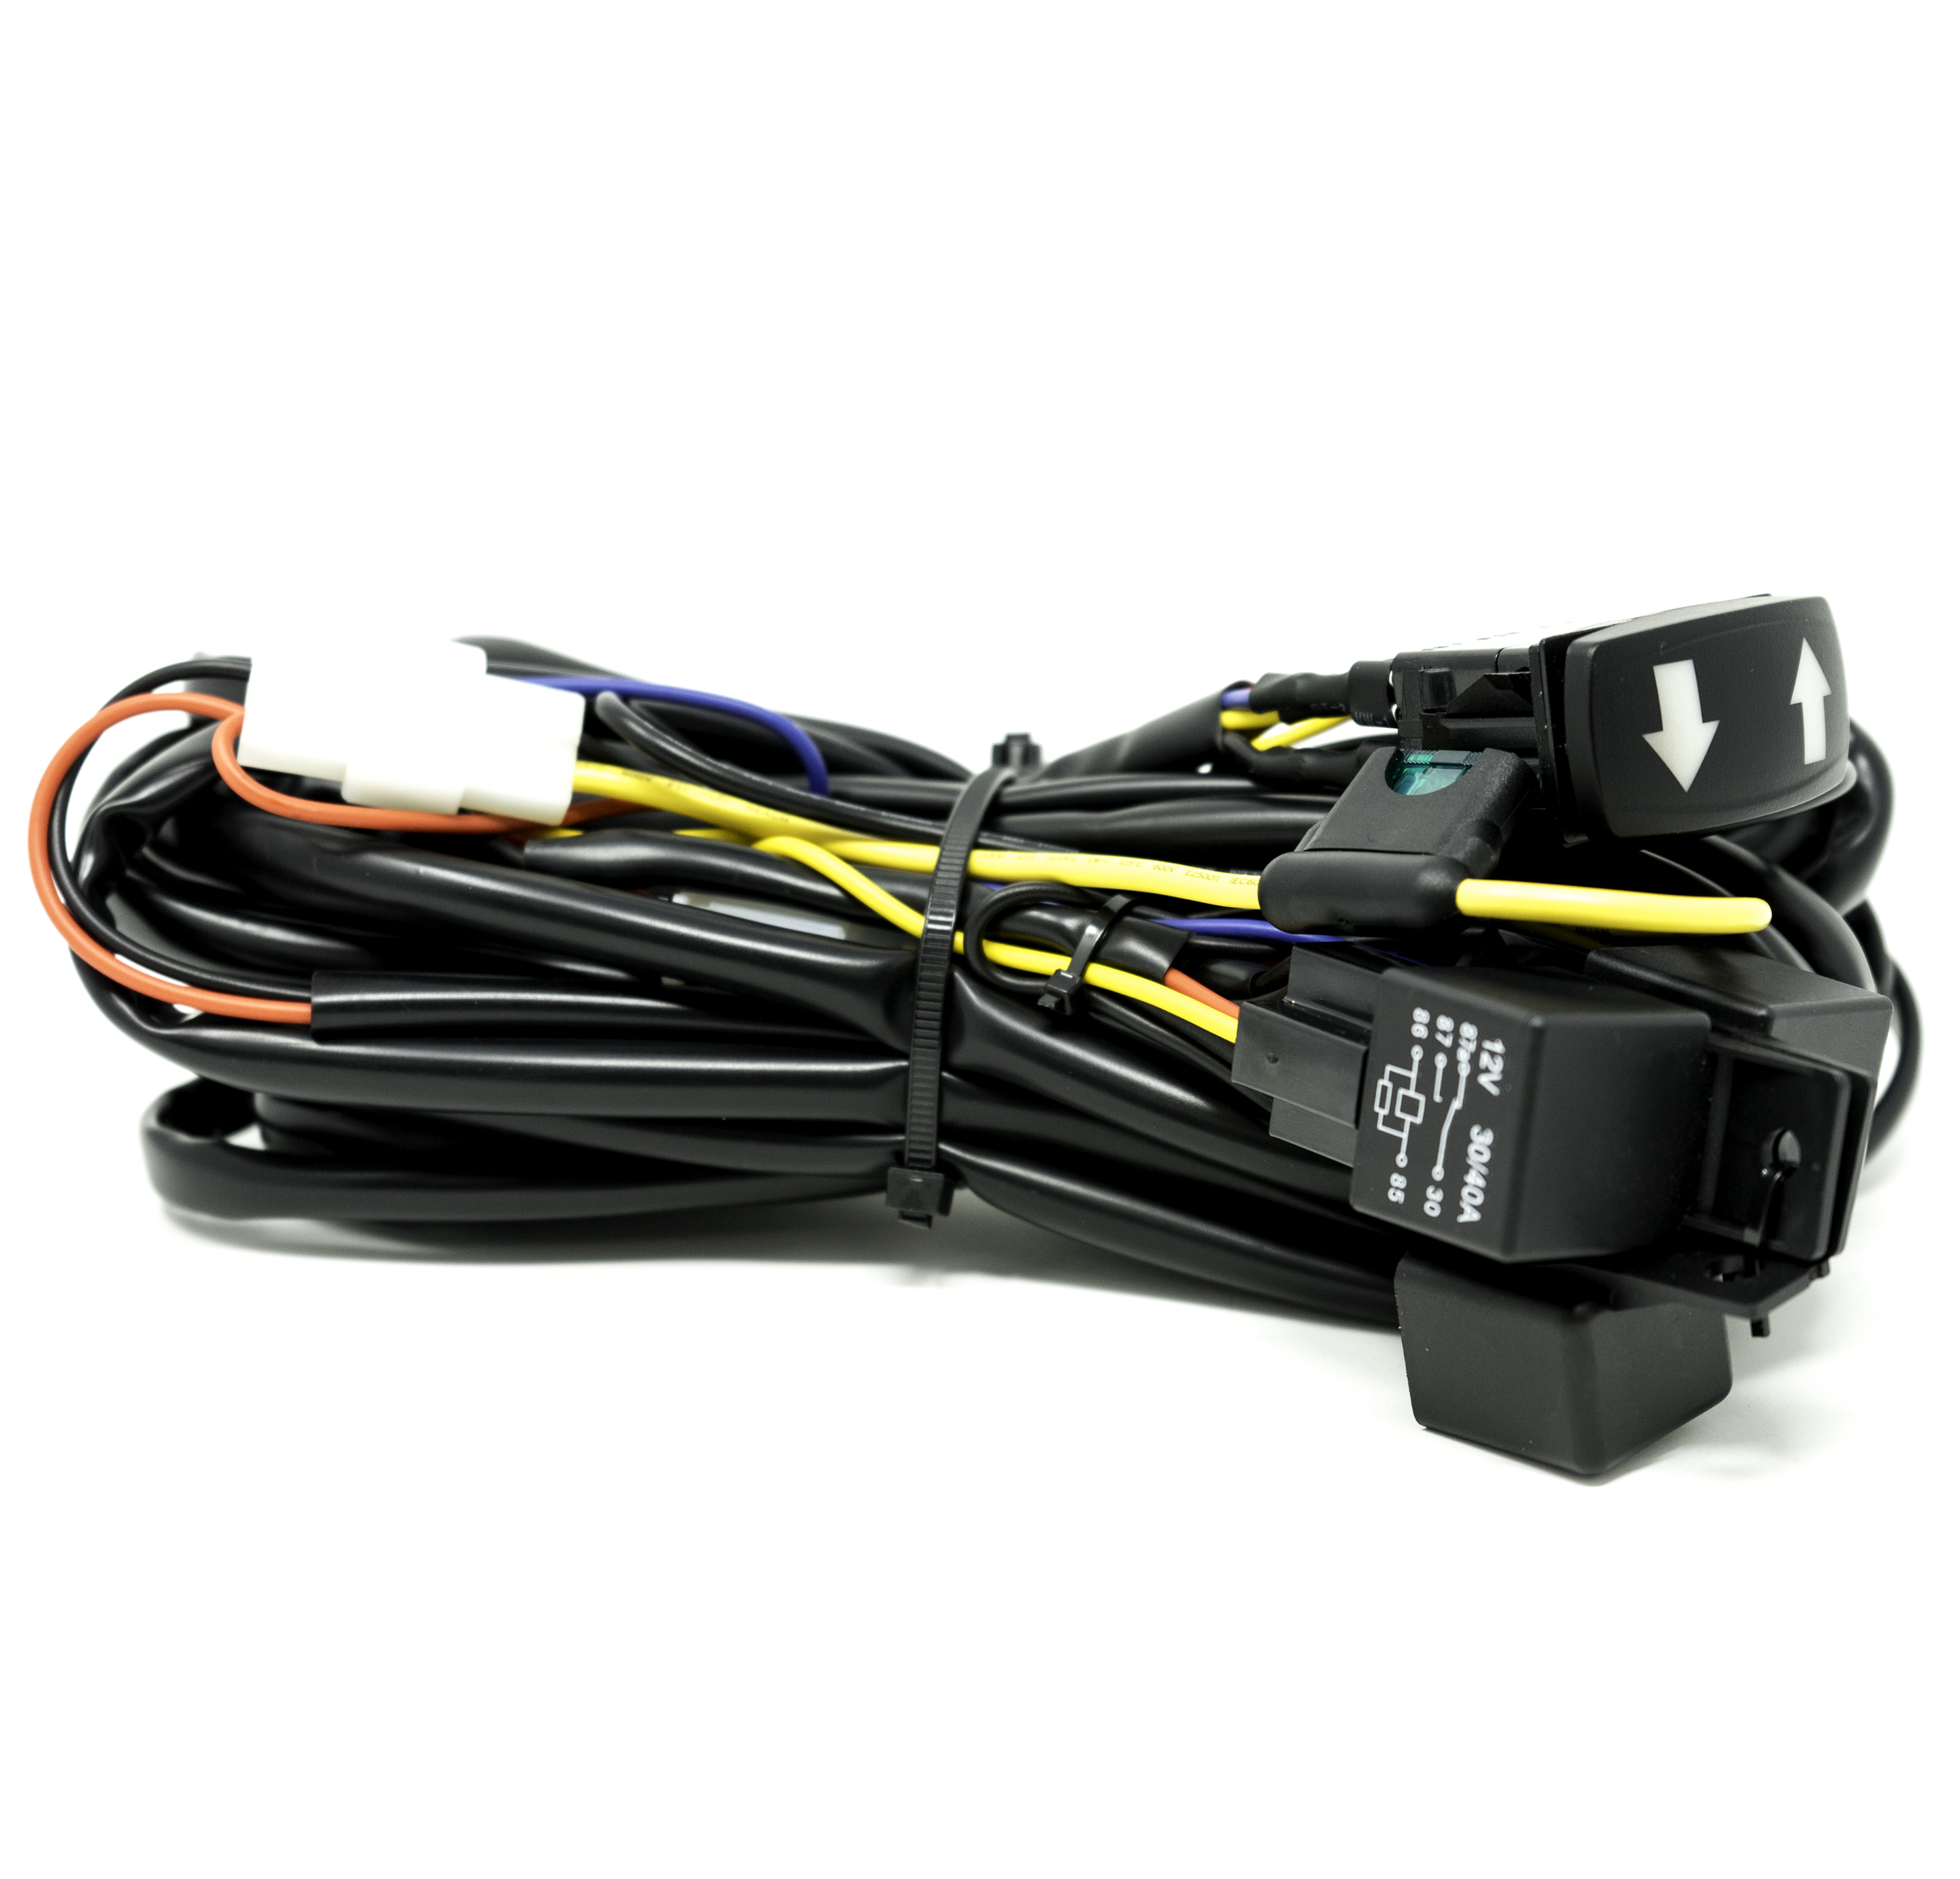 baja designs rtl s turn signal wiring harness for utvs. Black Bedroom Furniture Sets. Home Design Ideas